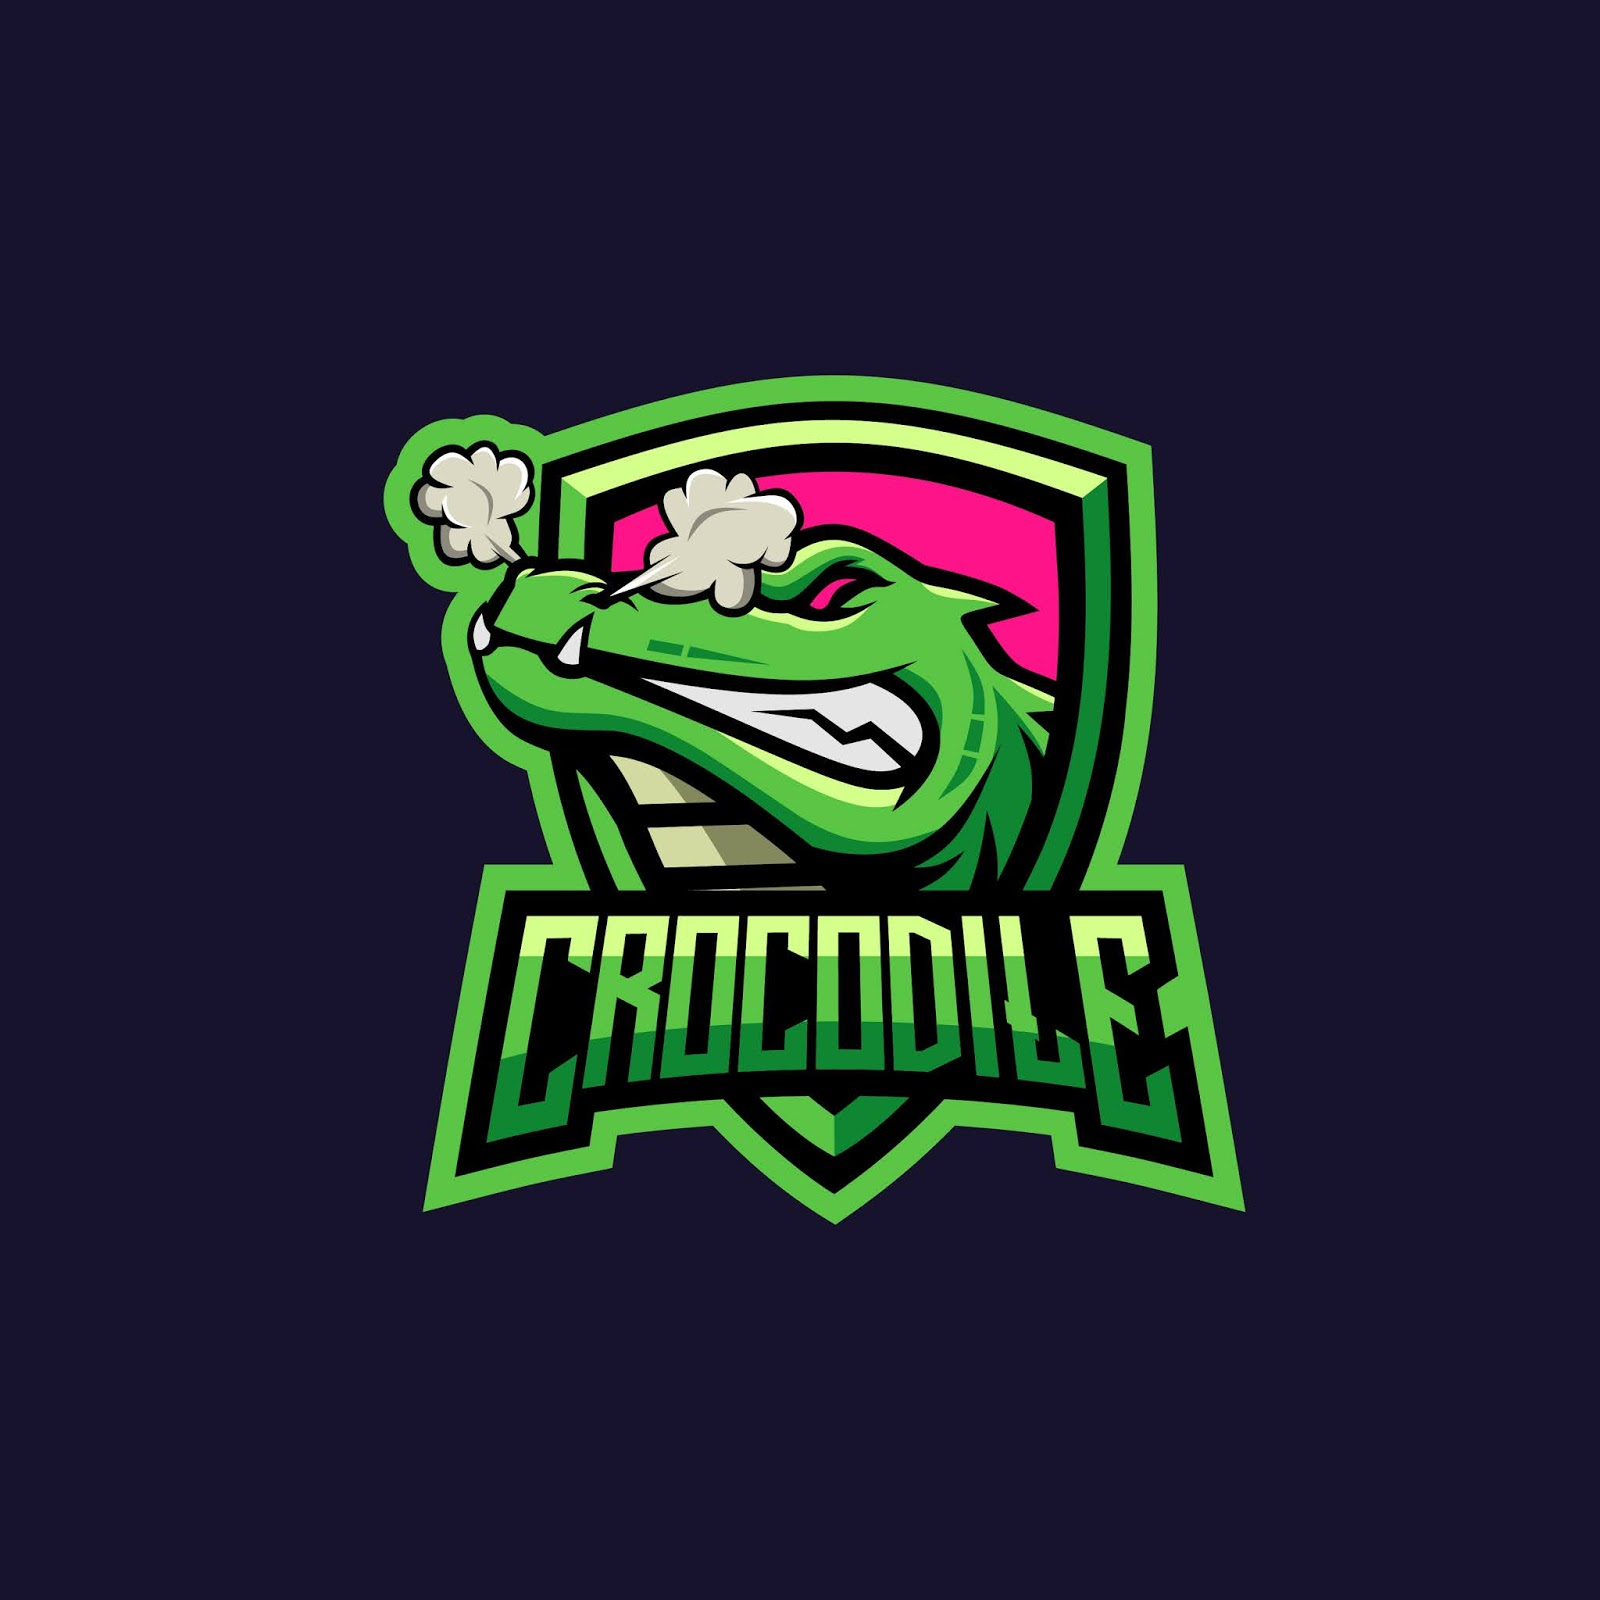 Strong Crocodile Illustration Logo Gaming Squad Free Download Vector CDR, AI, EPS and PNG Formats